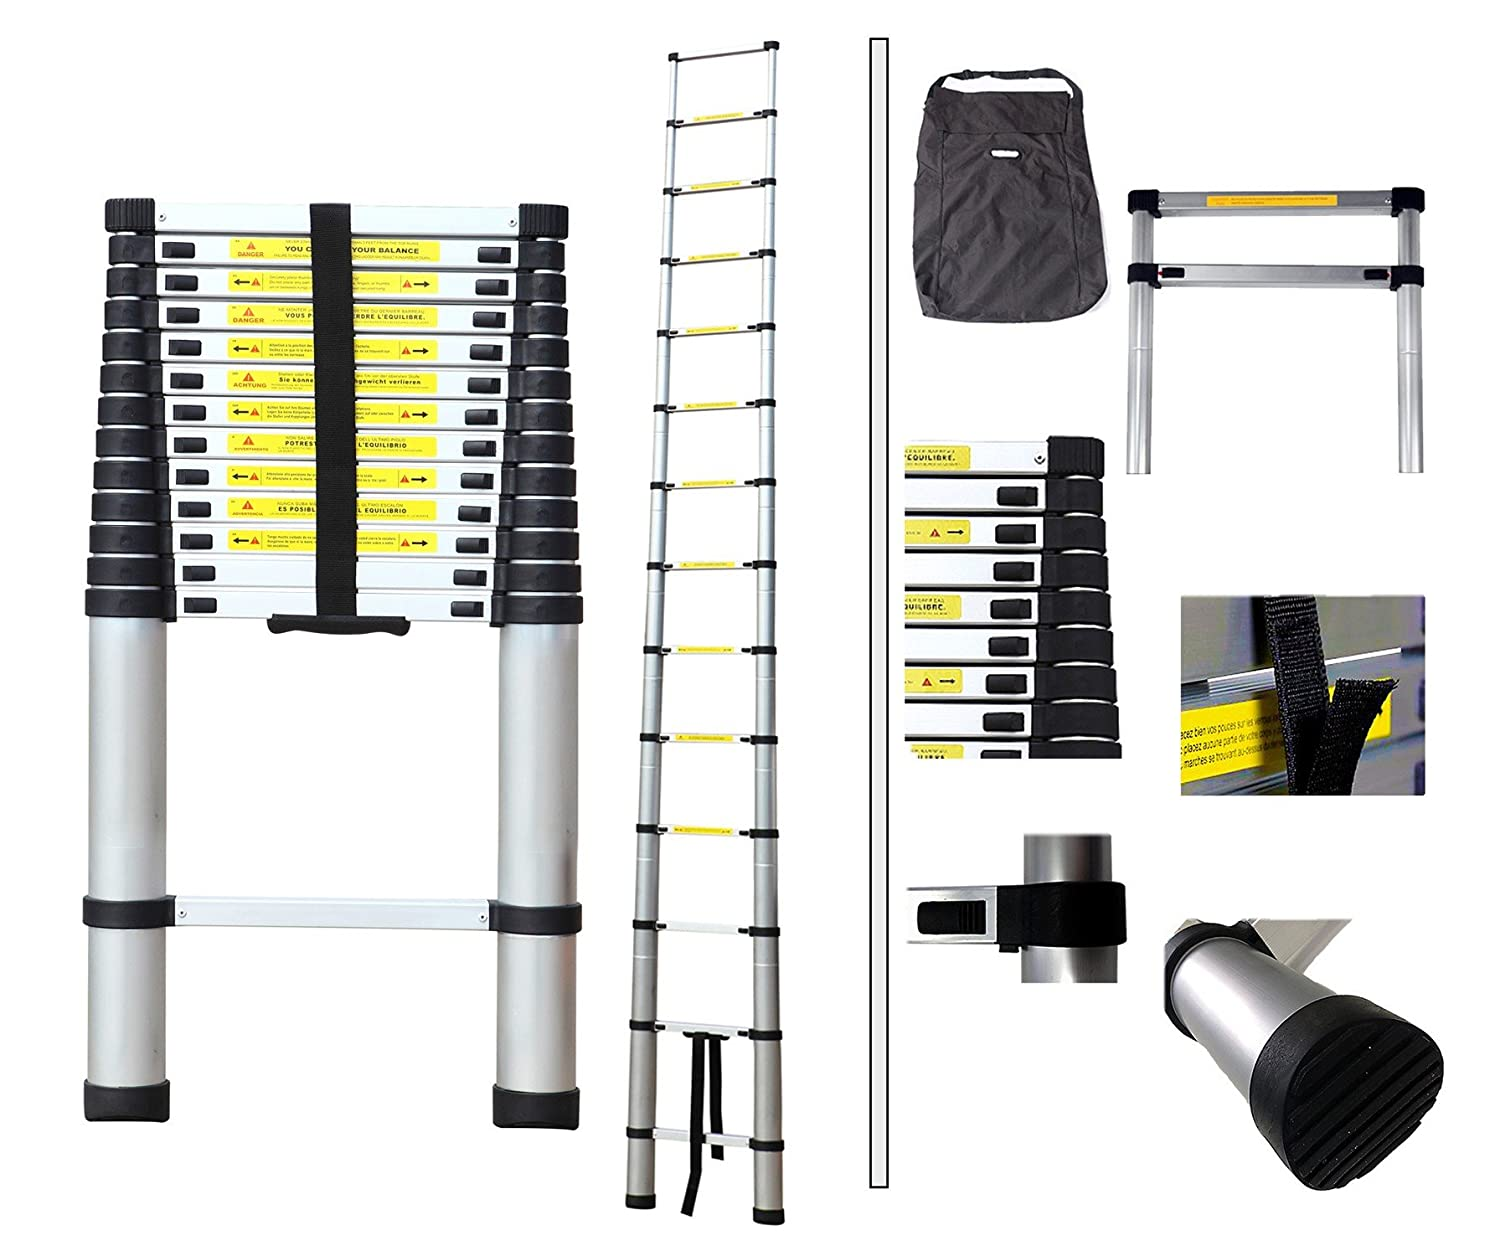 Todeco - Telescopic ladder, Foldable Ladder - Maximum load: 330 lbs - Standard/Certification: EN131 - 13.5 feet, FREE Carry bag, EN 131